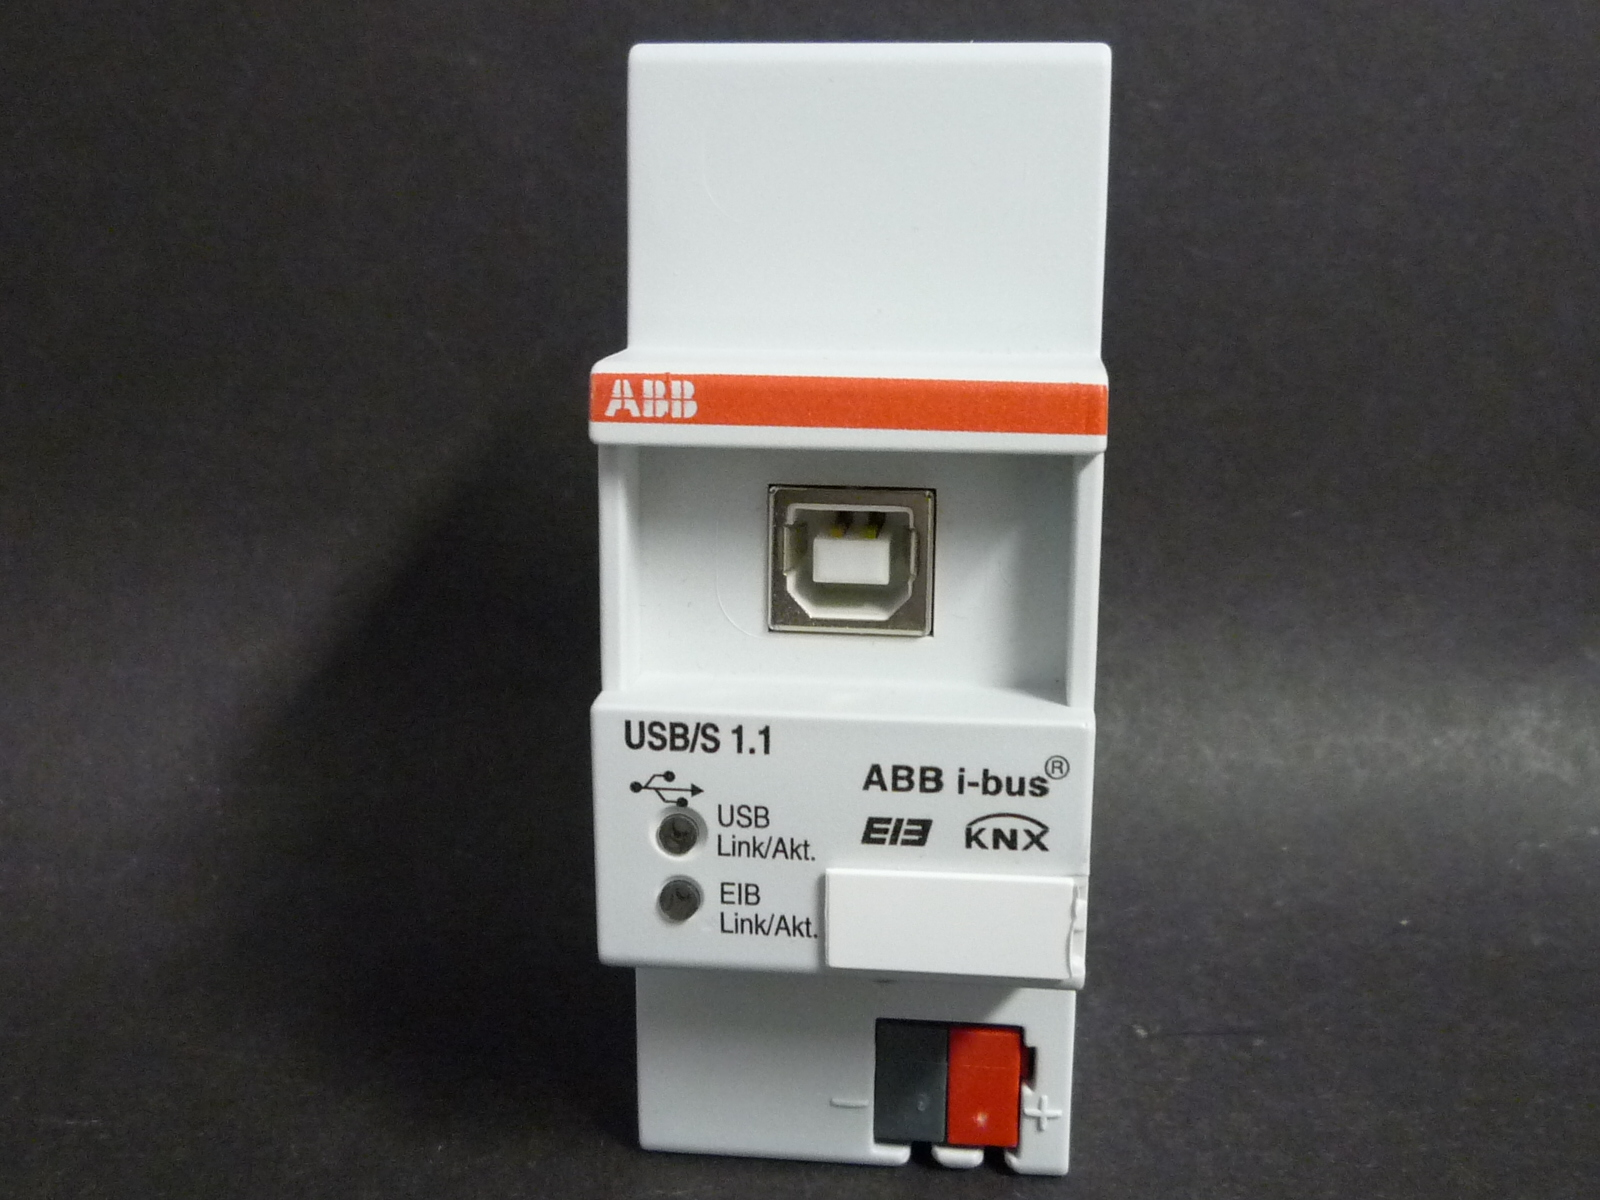 abb eib knx usb schnittstelle reg modell usb s 1 1 ebay. Black Bedroom Furniture Sets. Home Design Ideas